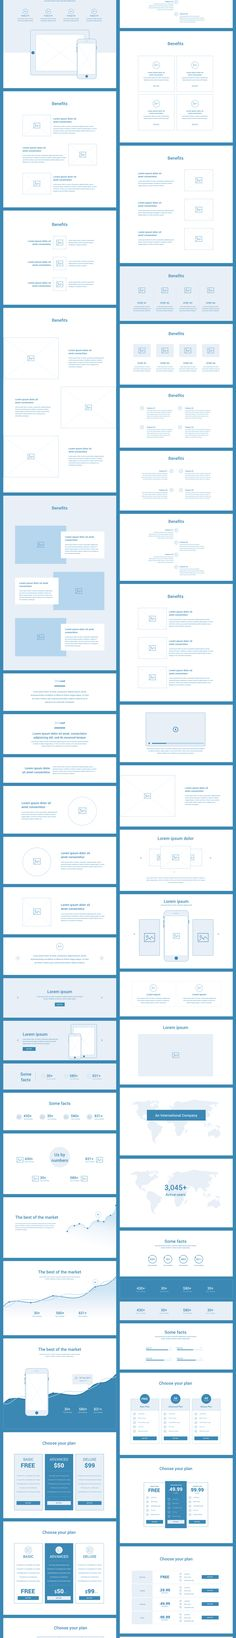 Wireland is a complete wireframing library collection optimized to structure web design projects really fast and easy while getting great results. This library consist on 190+ ready-to-use Layouts sections divided into 15 popular content categories.